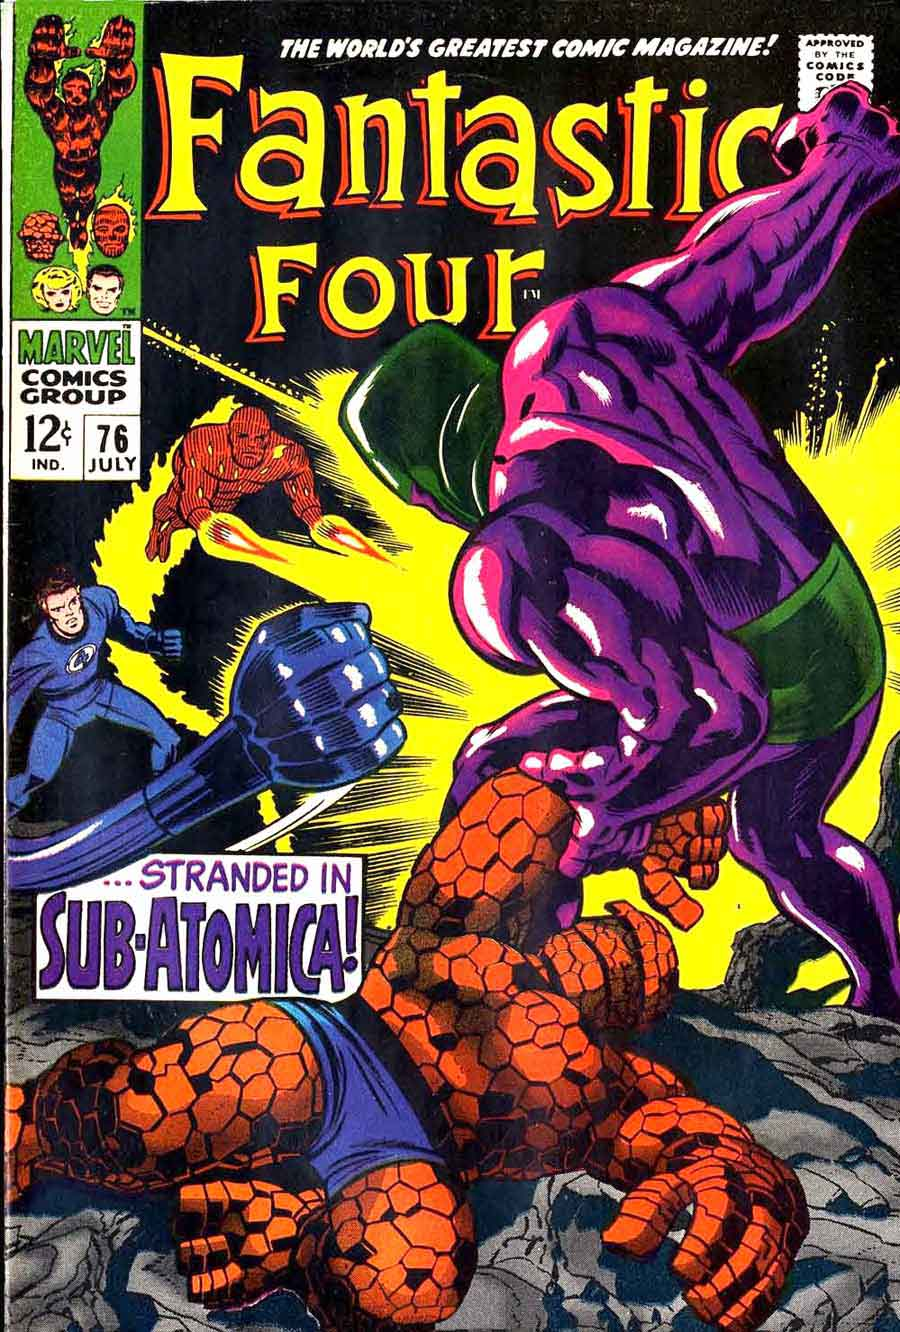 Fantastc Four v1 #76 marvel 1960s silver age comic book cover art by Jack Kirby